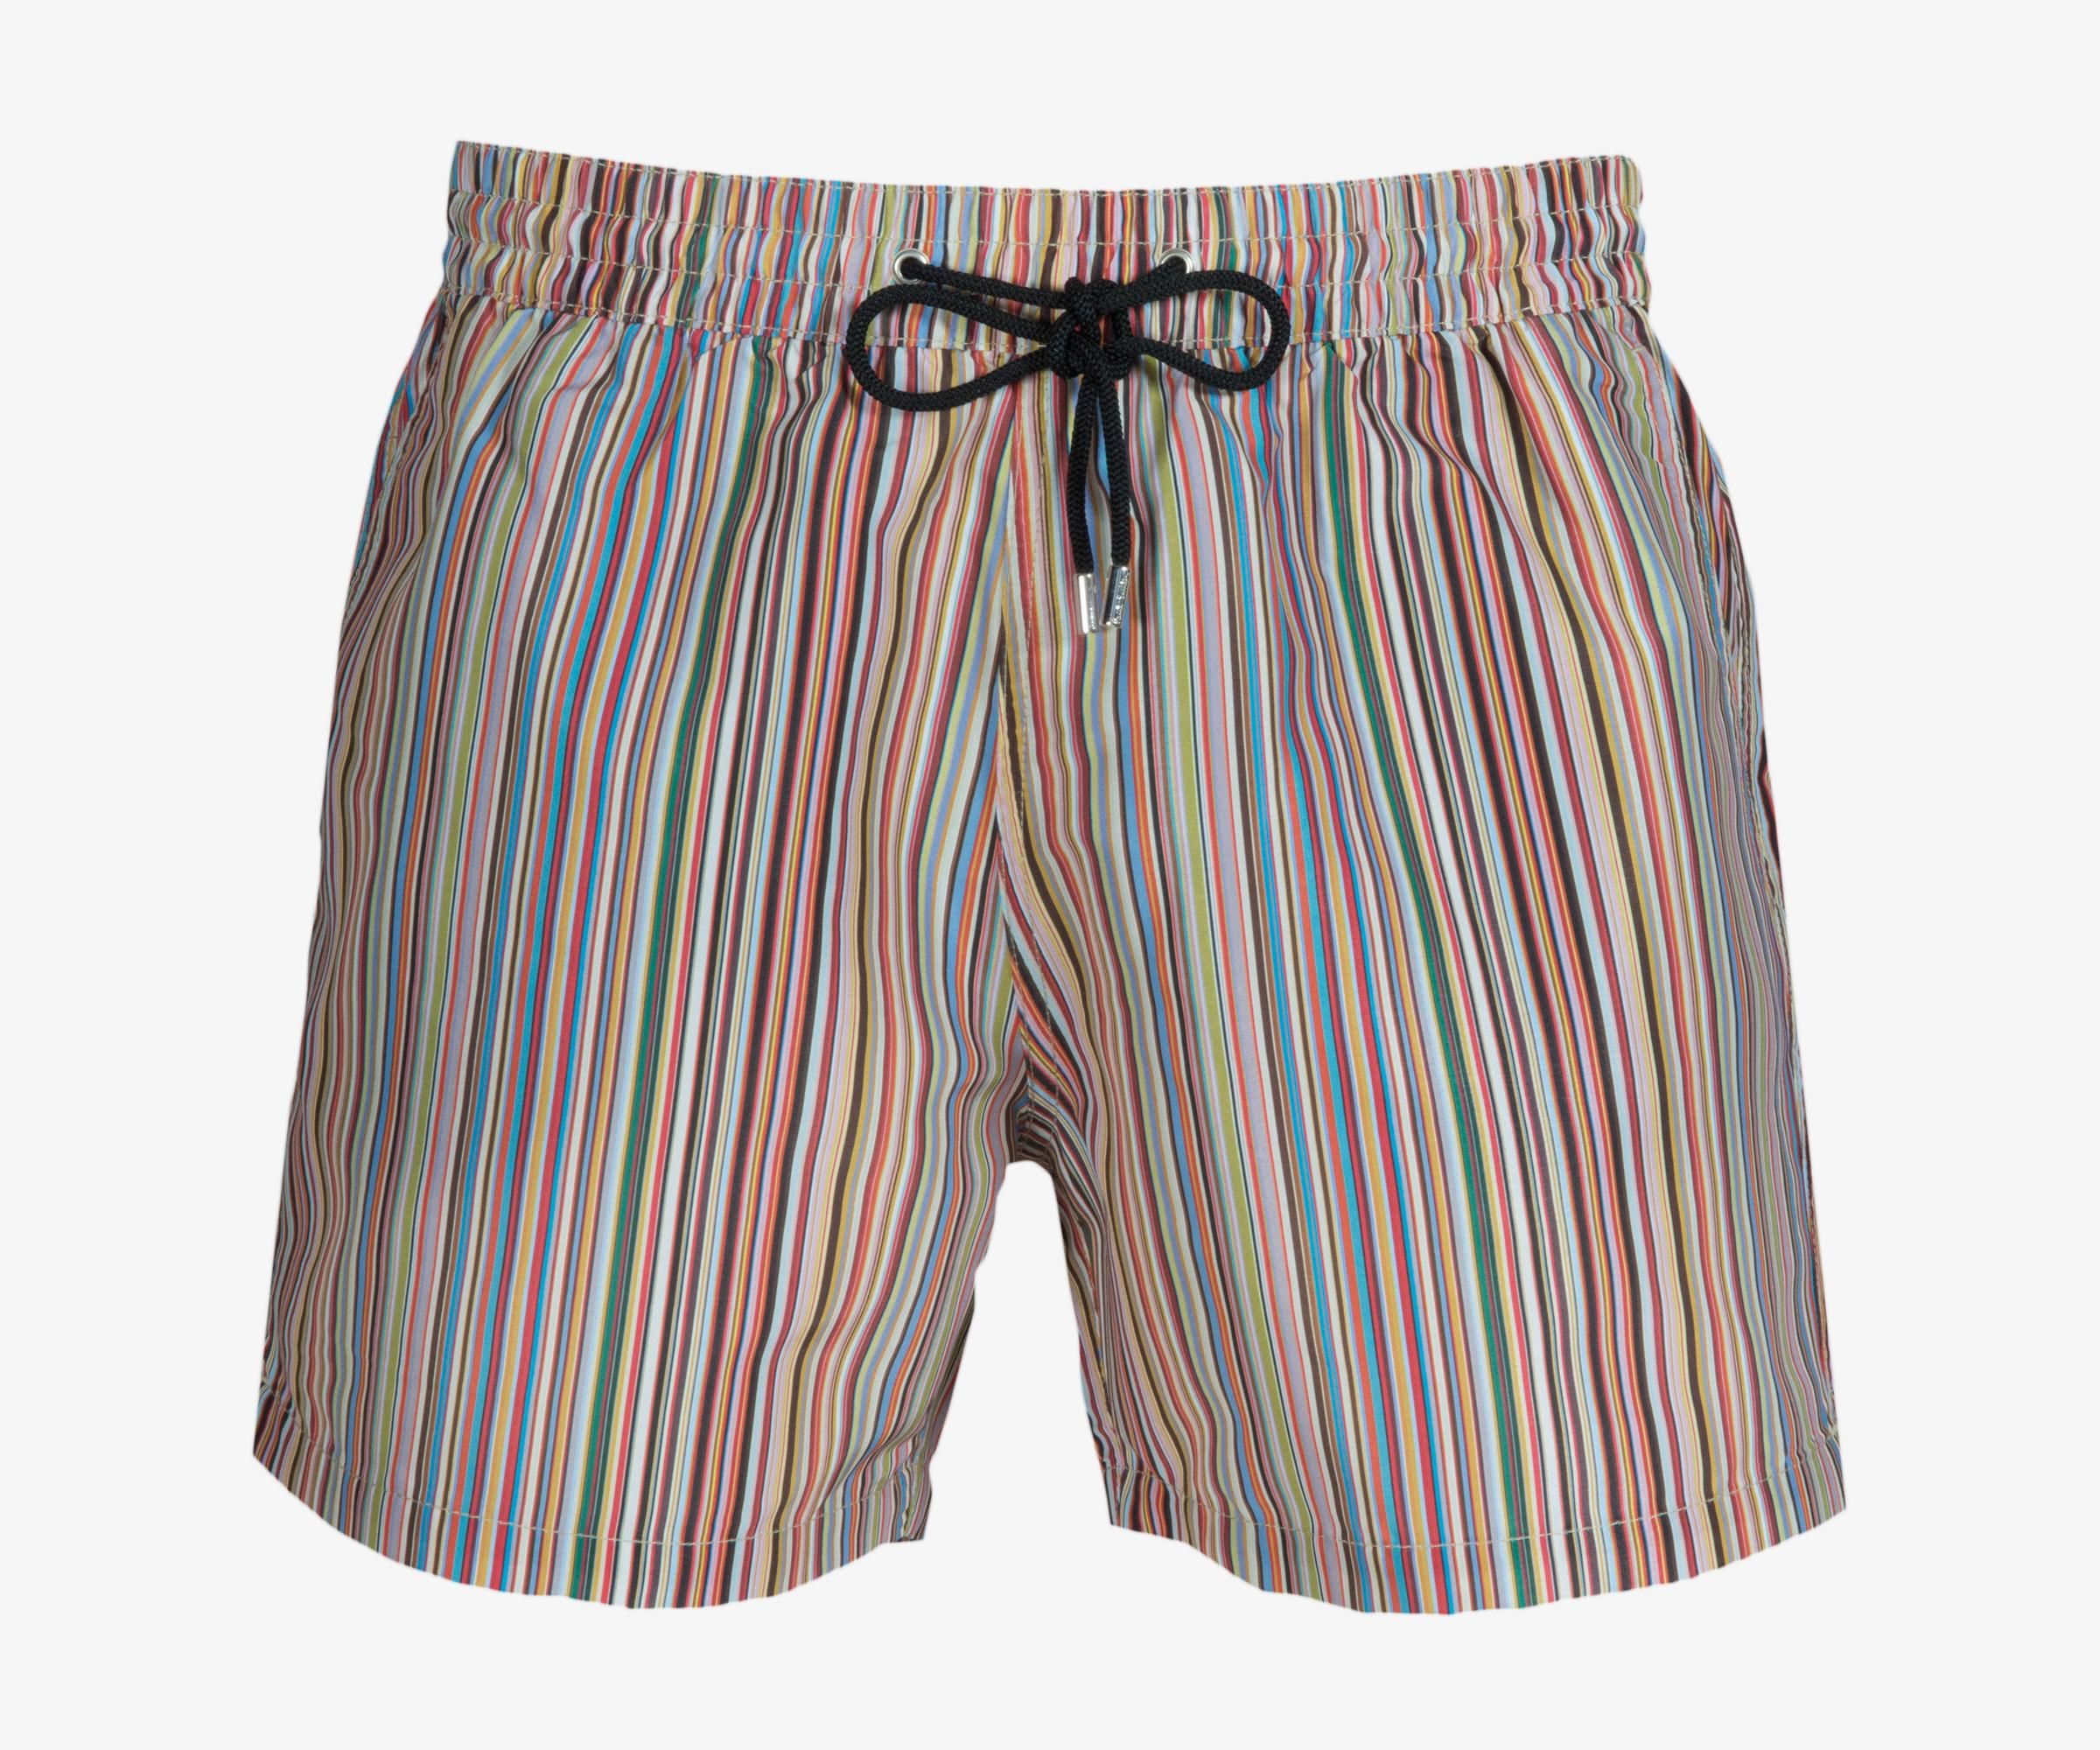 Navy and Light Blue Tropical Leaf Print Swim Shorts Enlist Sale High Quality Sale Pick A Best Cheap Eastbay Best Seller Sale Online Free Shipping Discounts pB1l8iB